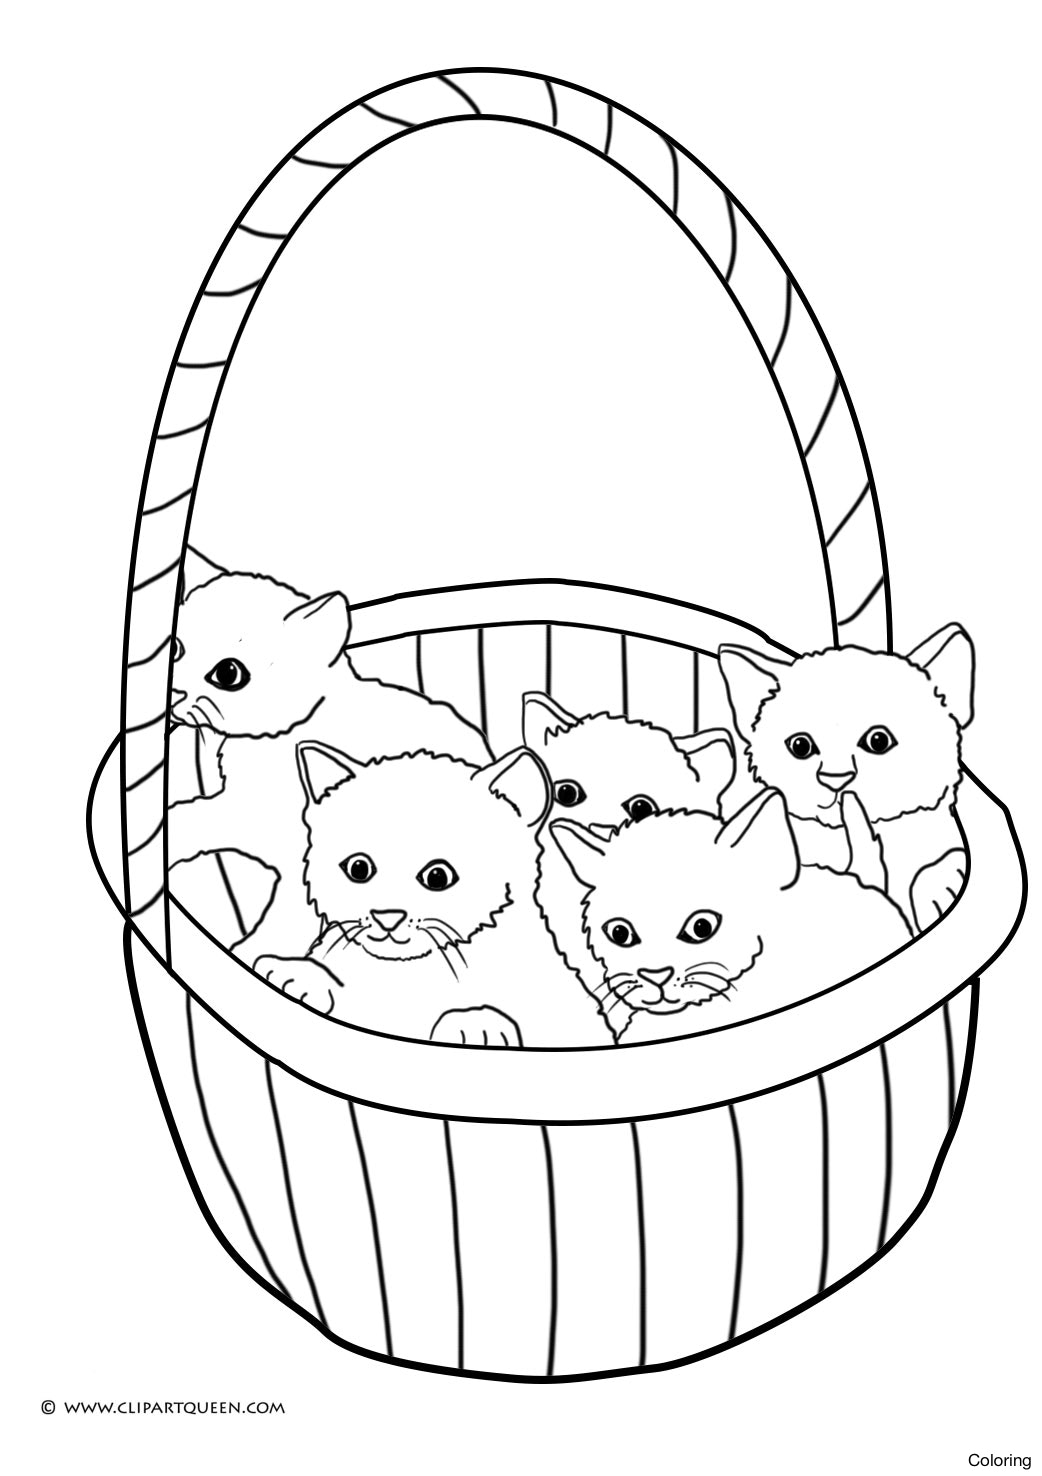 Kitten Coloring Pages To Print Out At Getdrawings Com Free